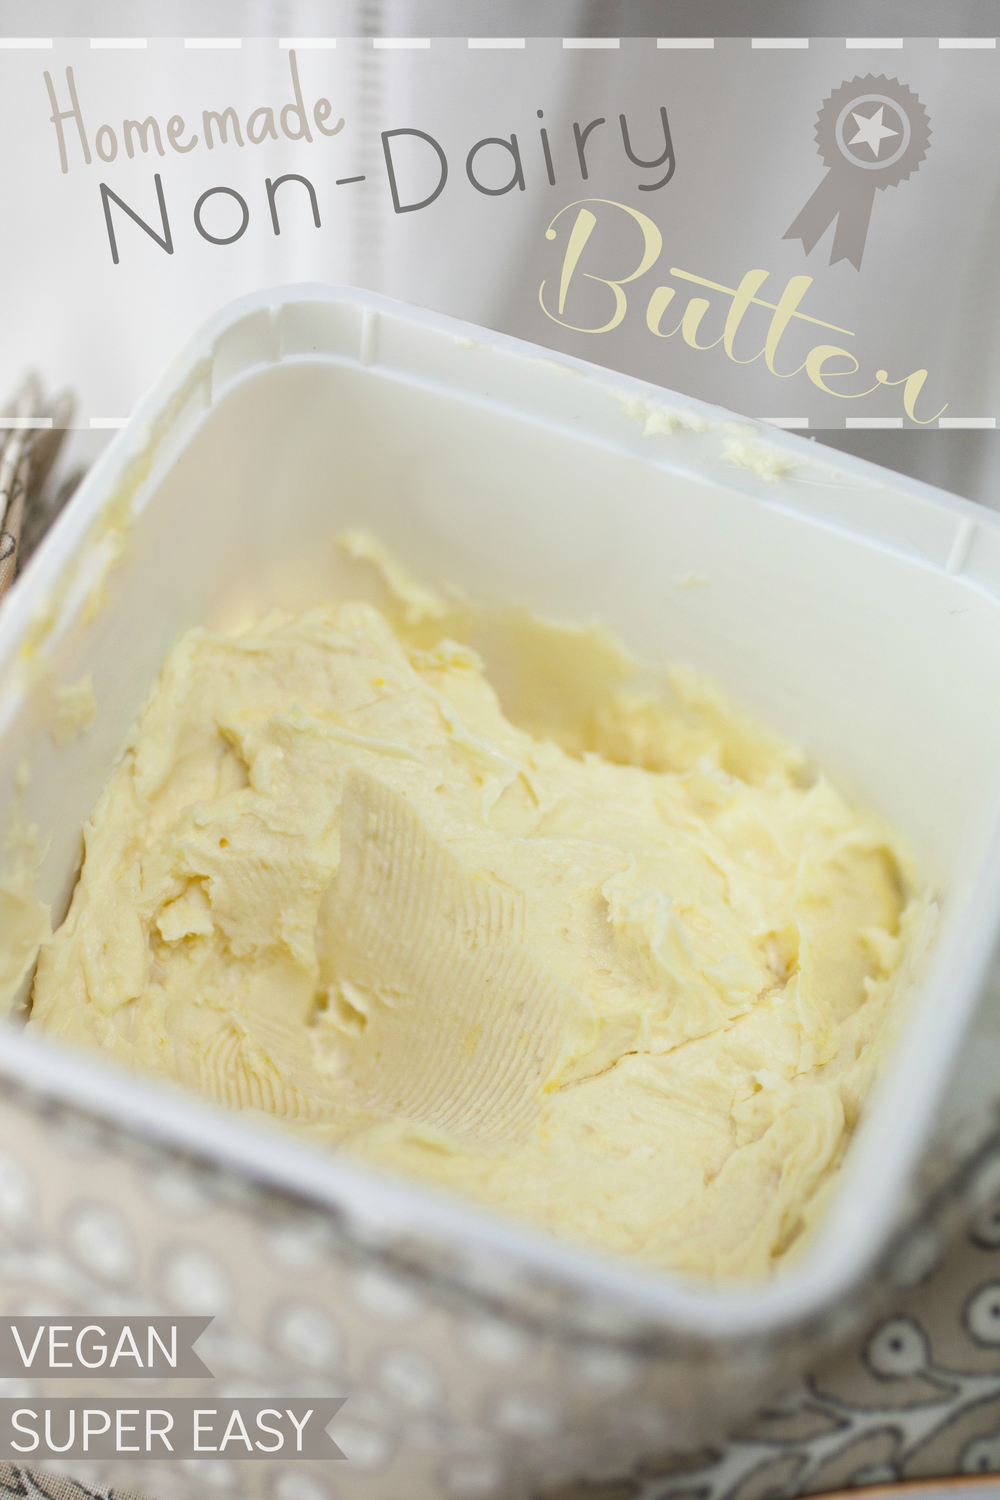 Produce On Parade - Homemade Vegan Butter